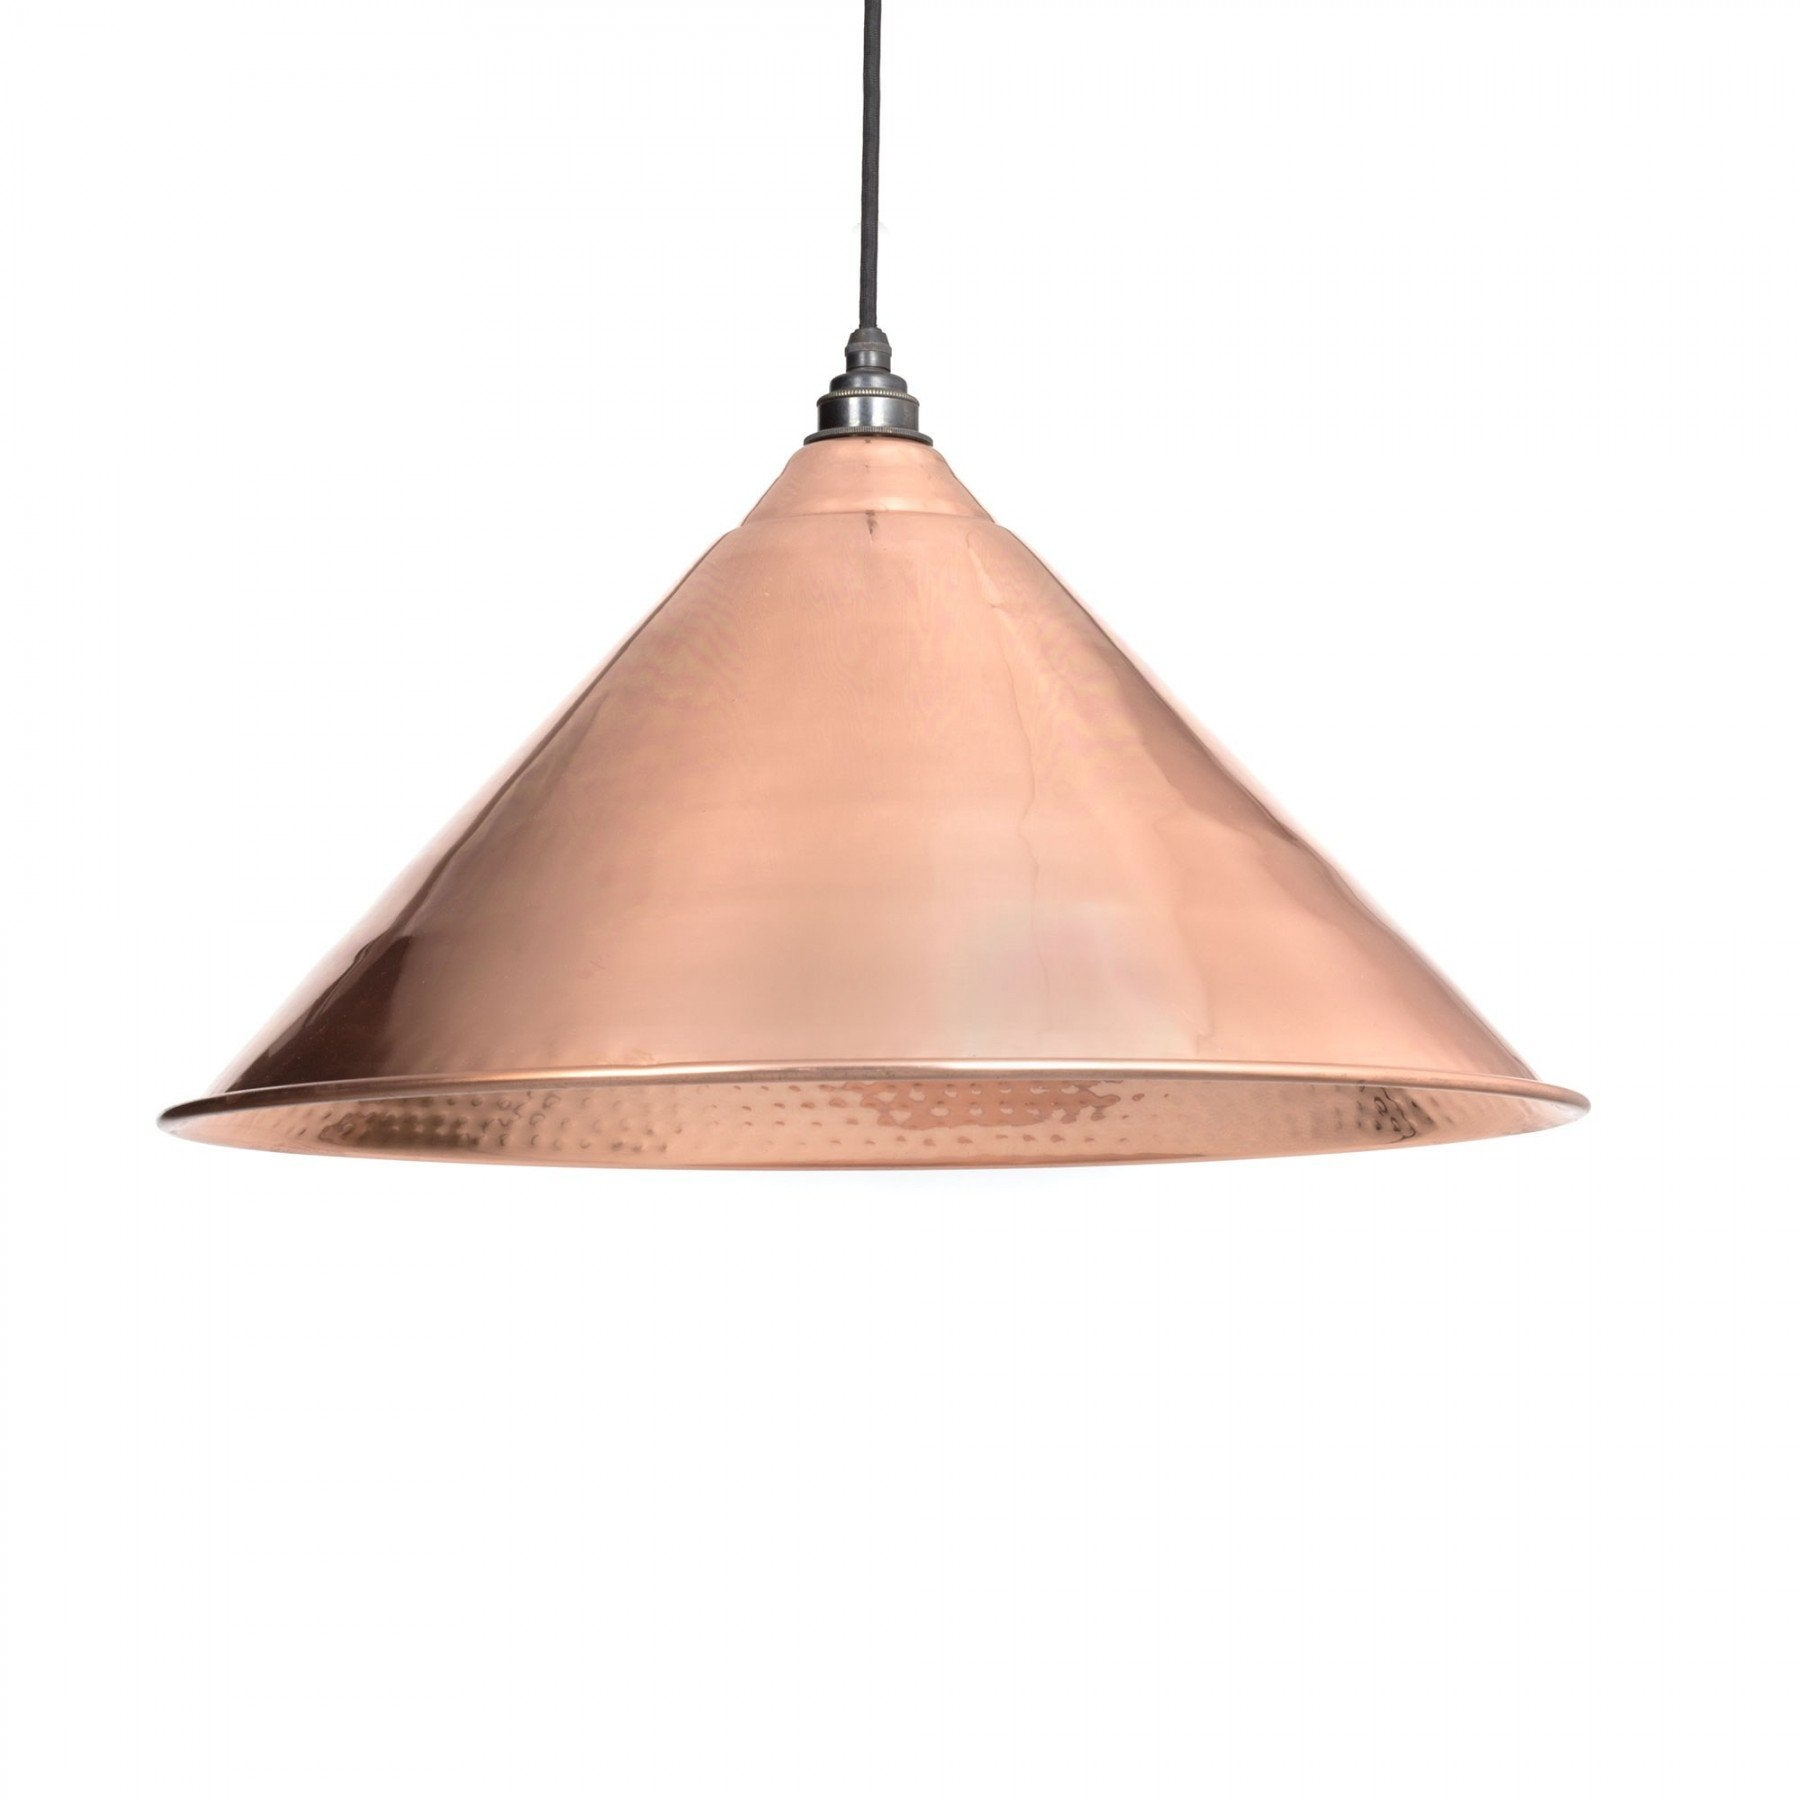 From the Anvil Hammered Copper Interior Hockley Pendant